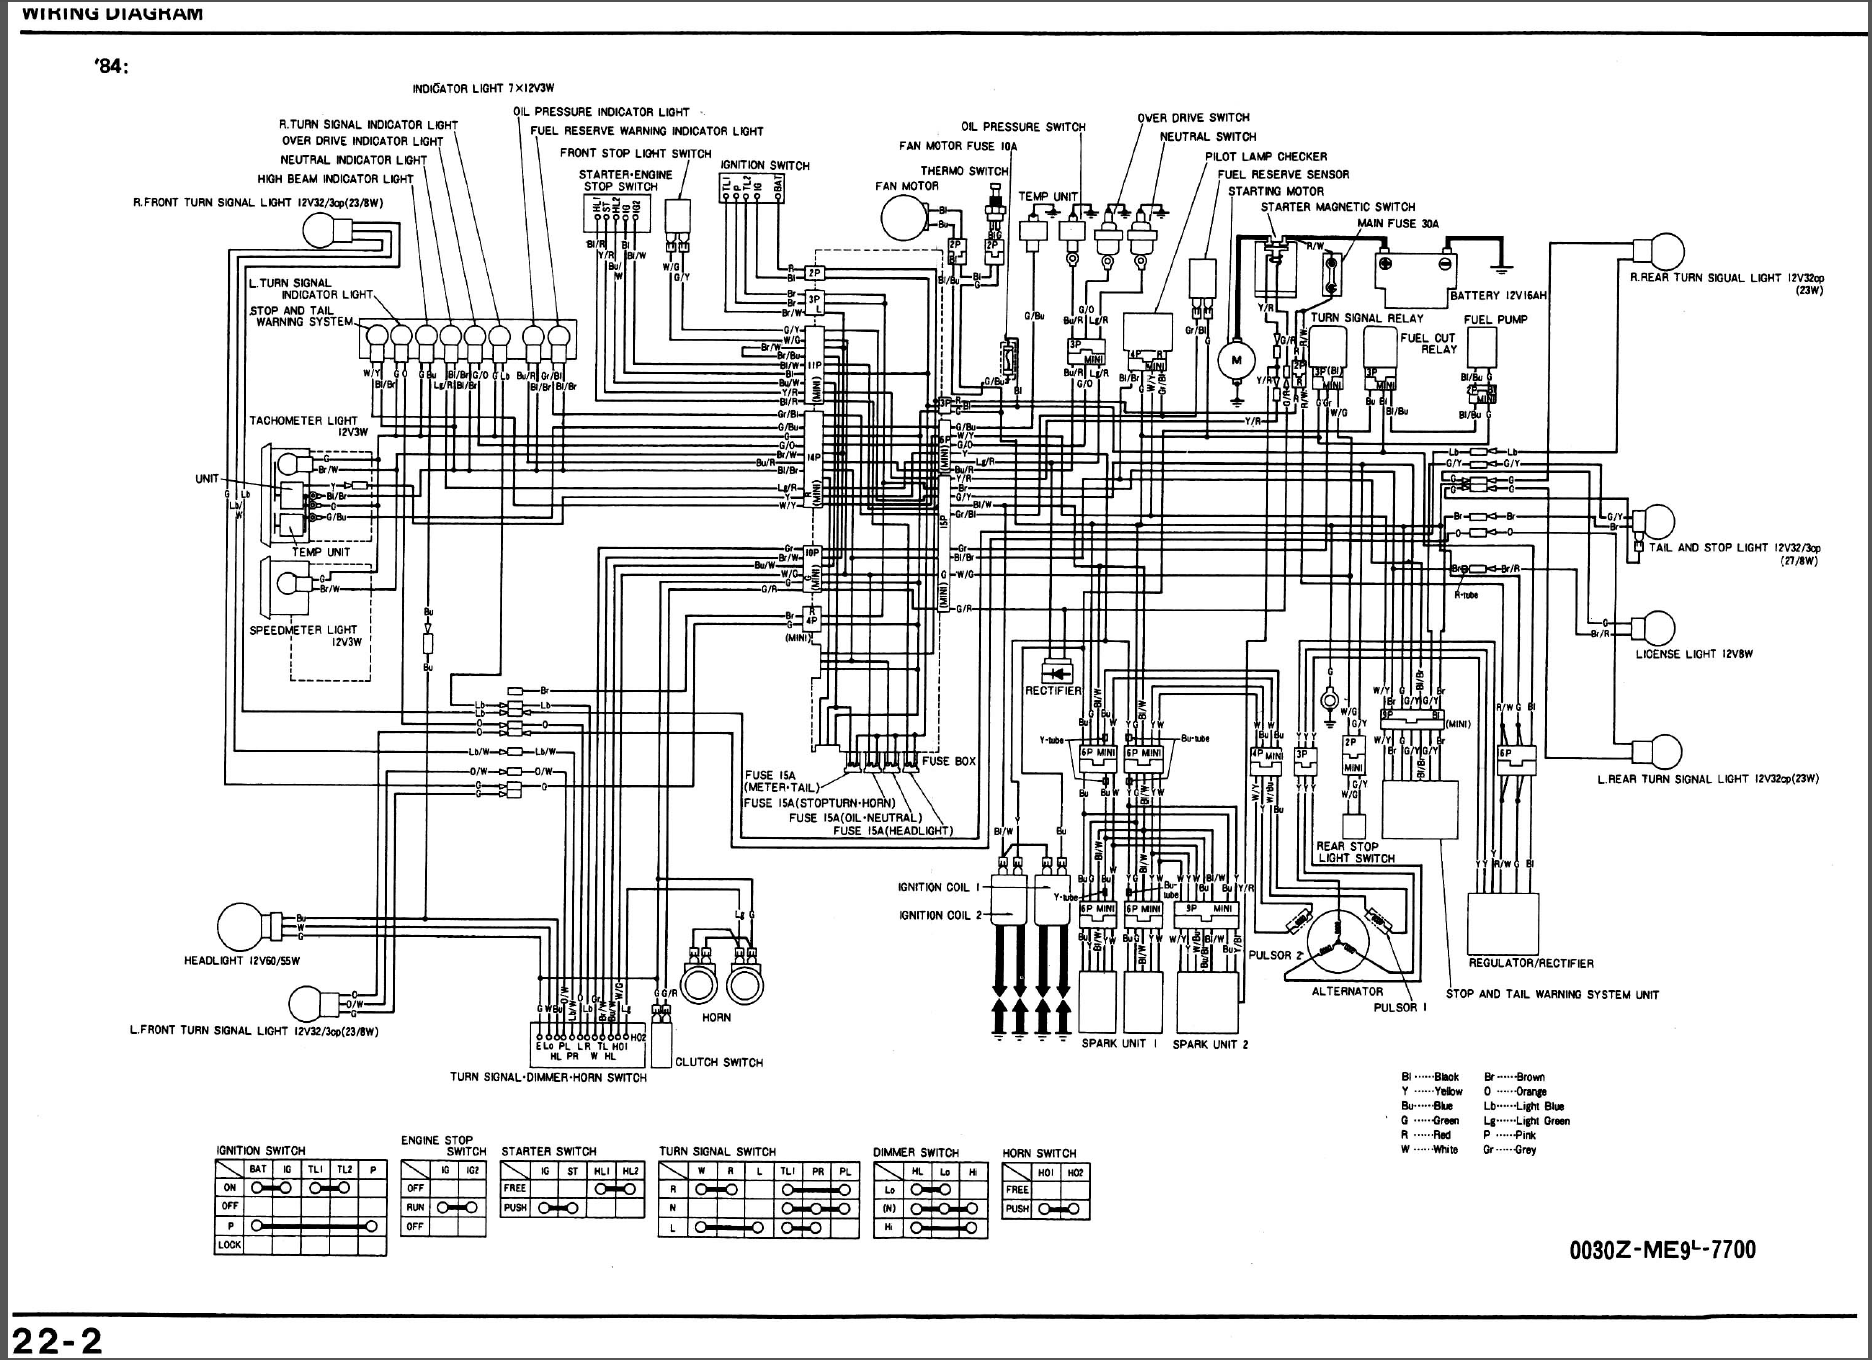 1997 honda shadow 600 wiring diagram